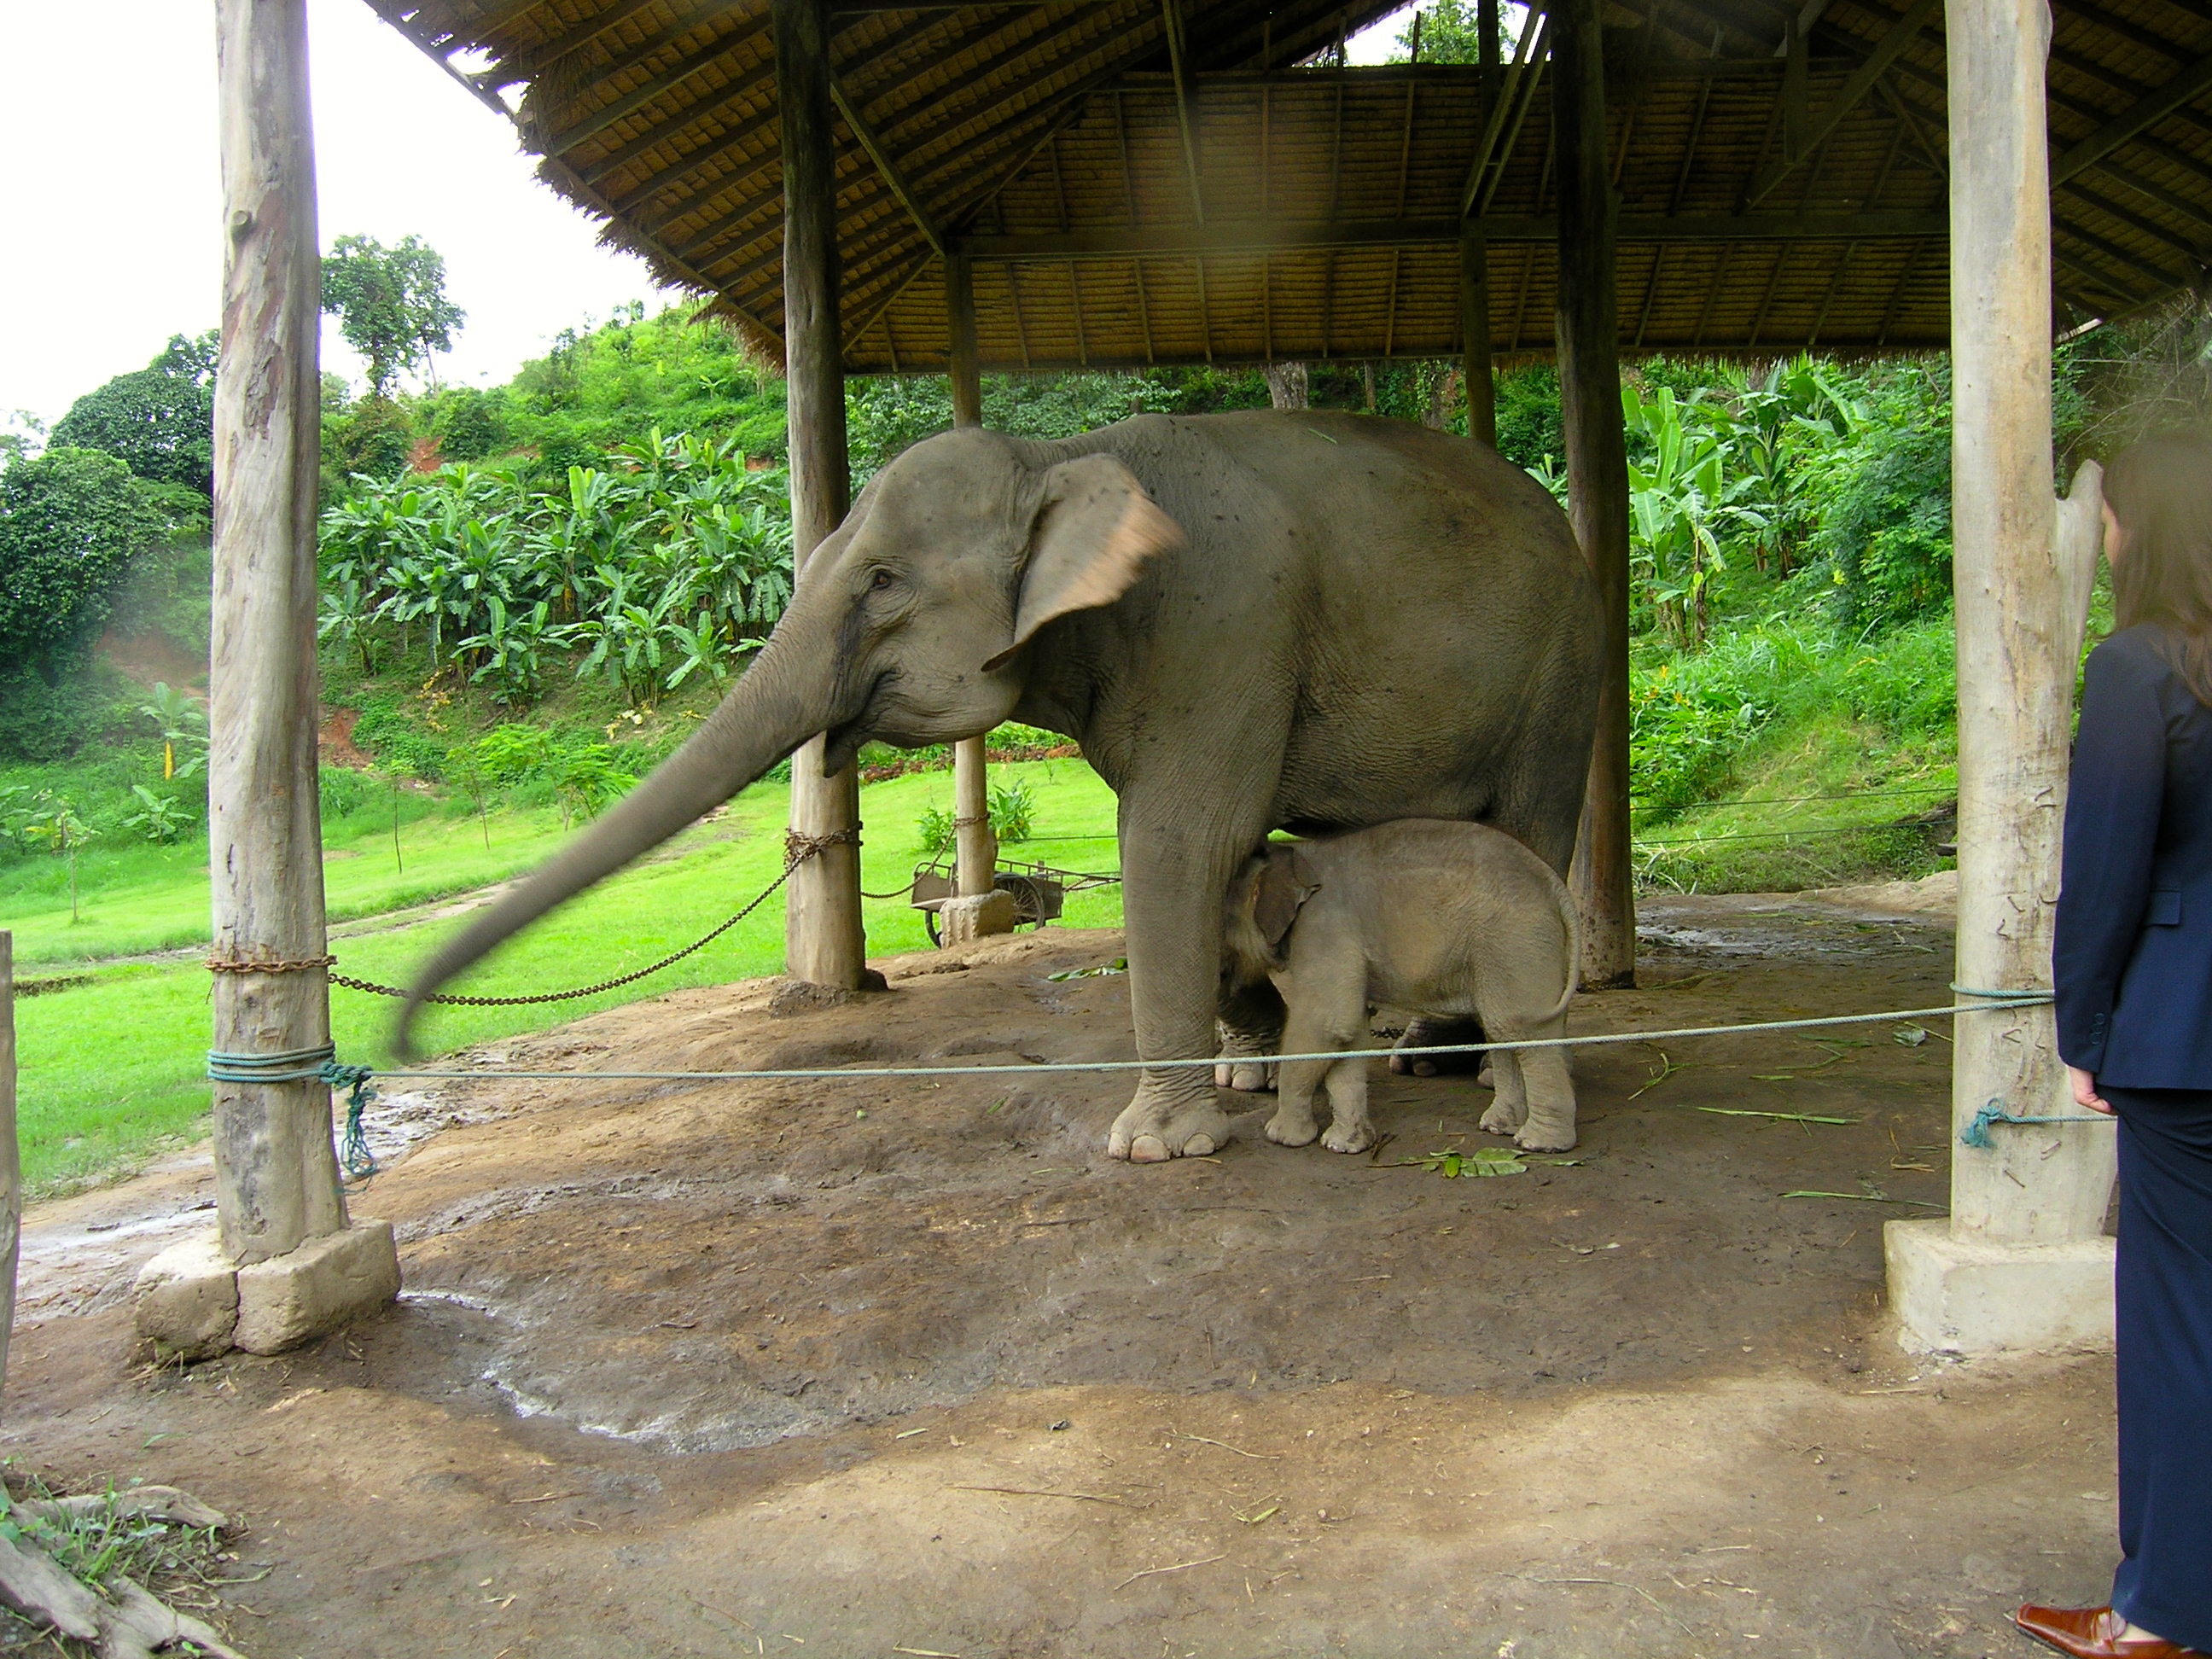 Elephant renewal station in Thailand